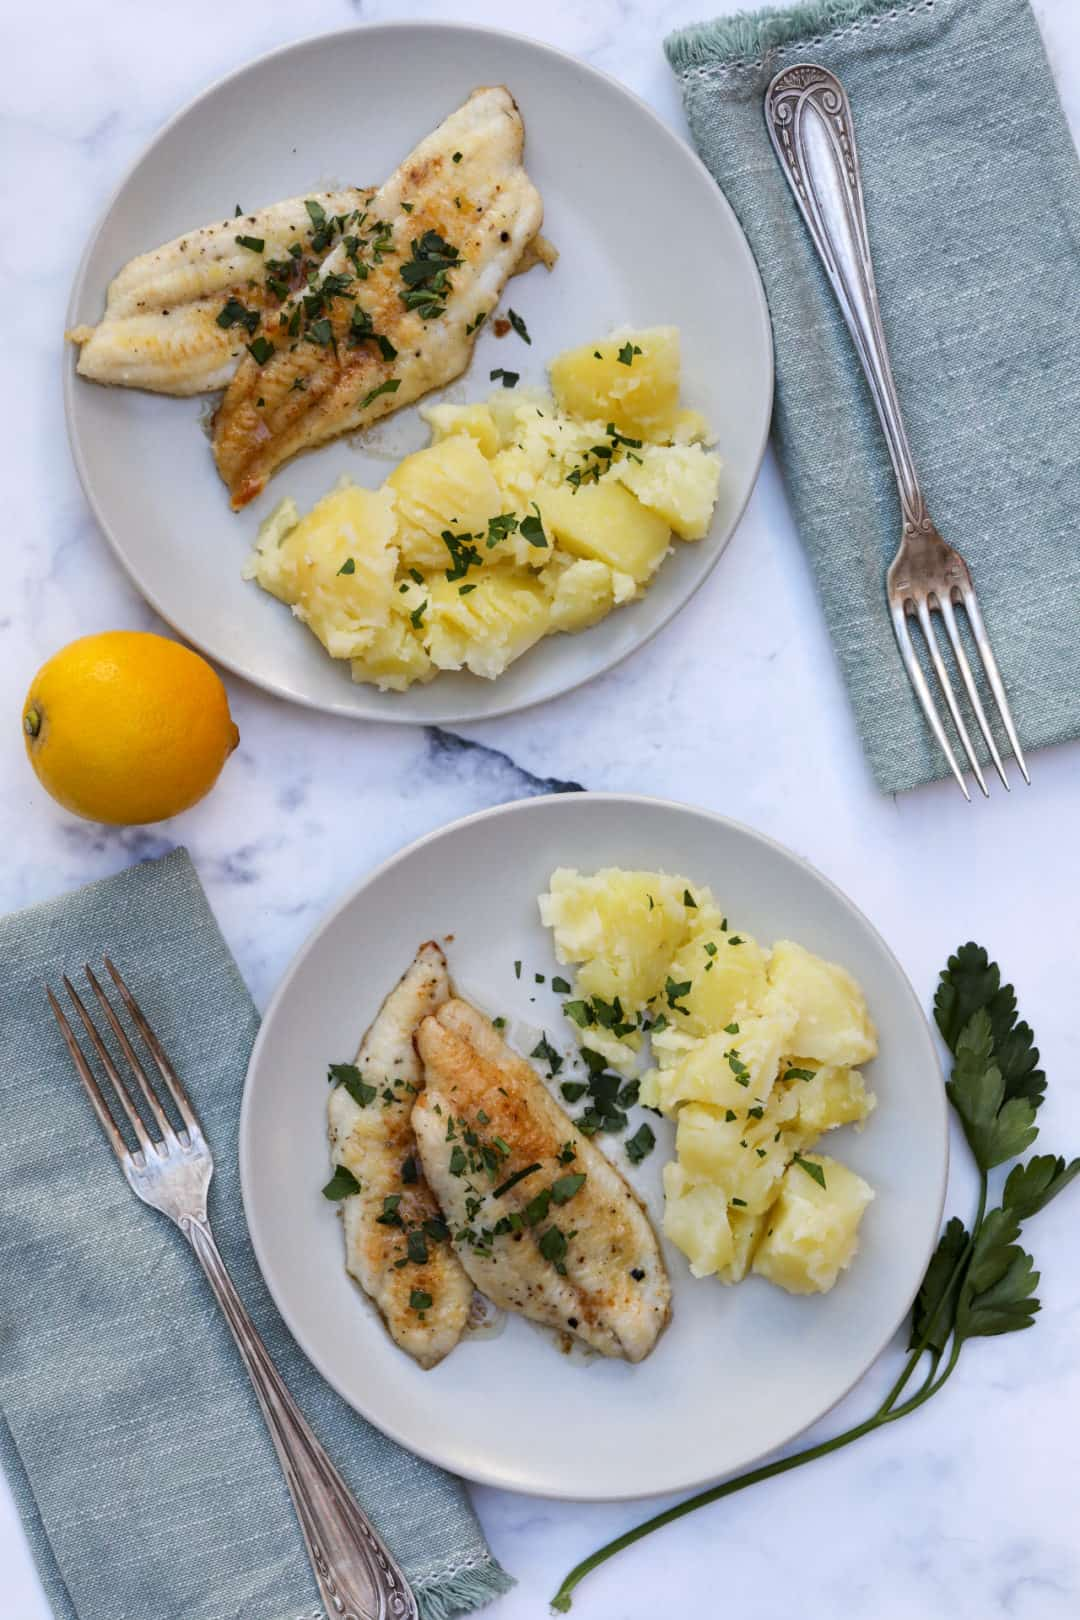 Sole meuniere on two plates with forks, napkins, parsley and lemon